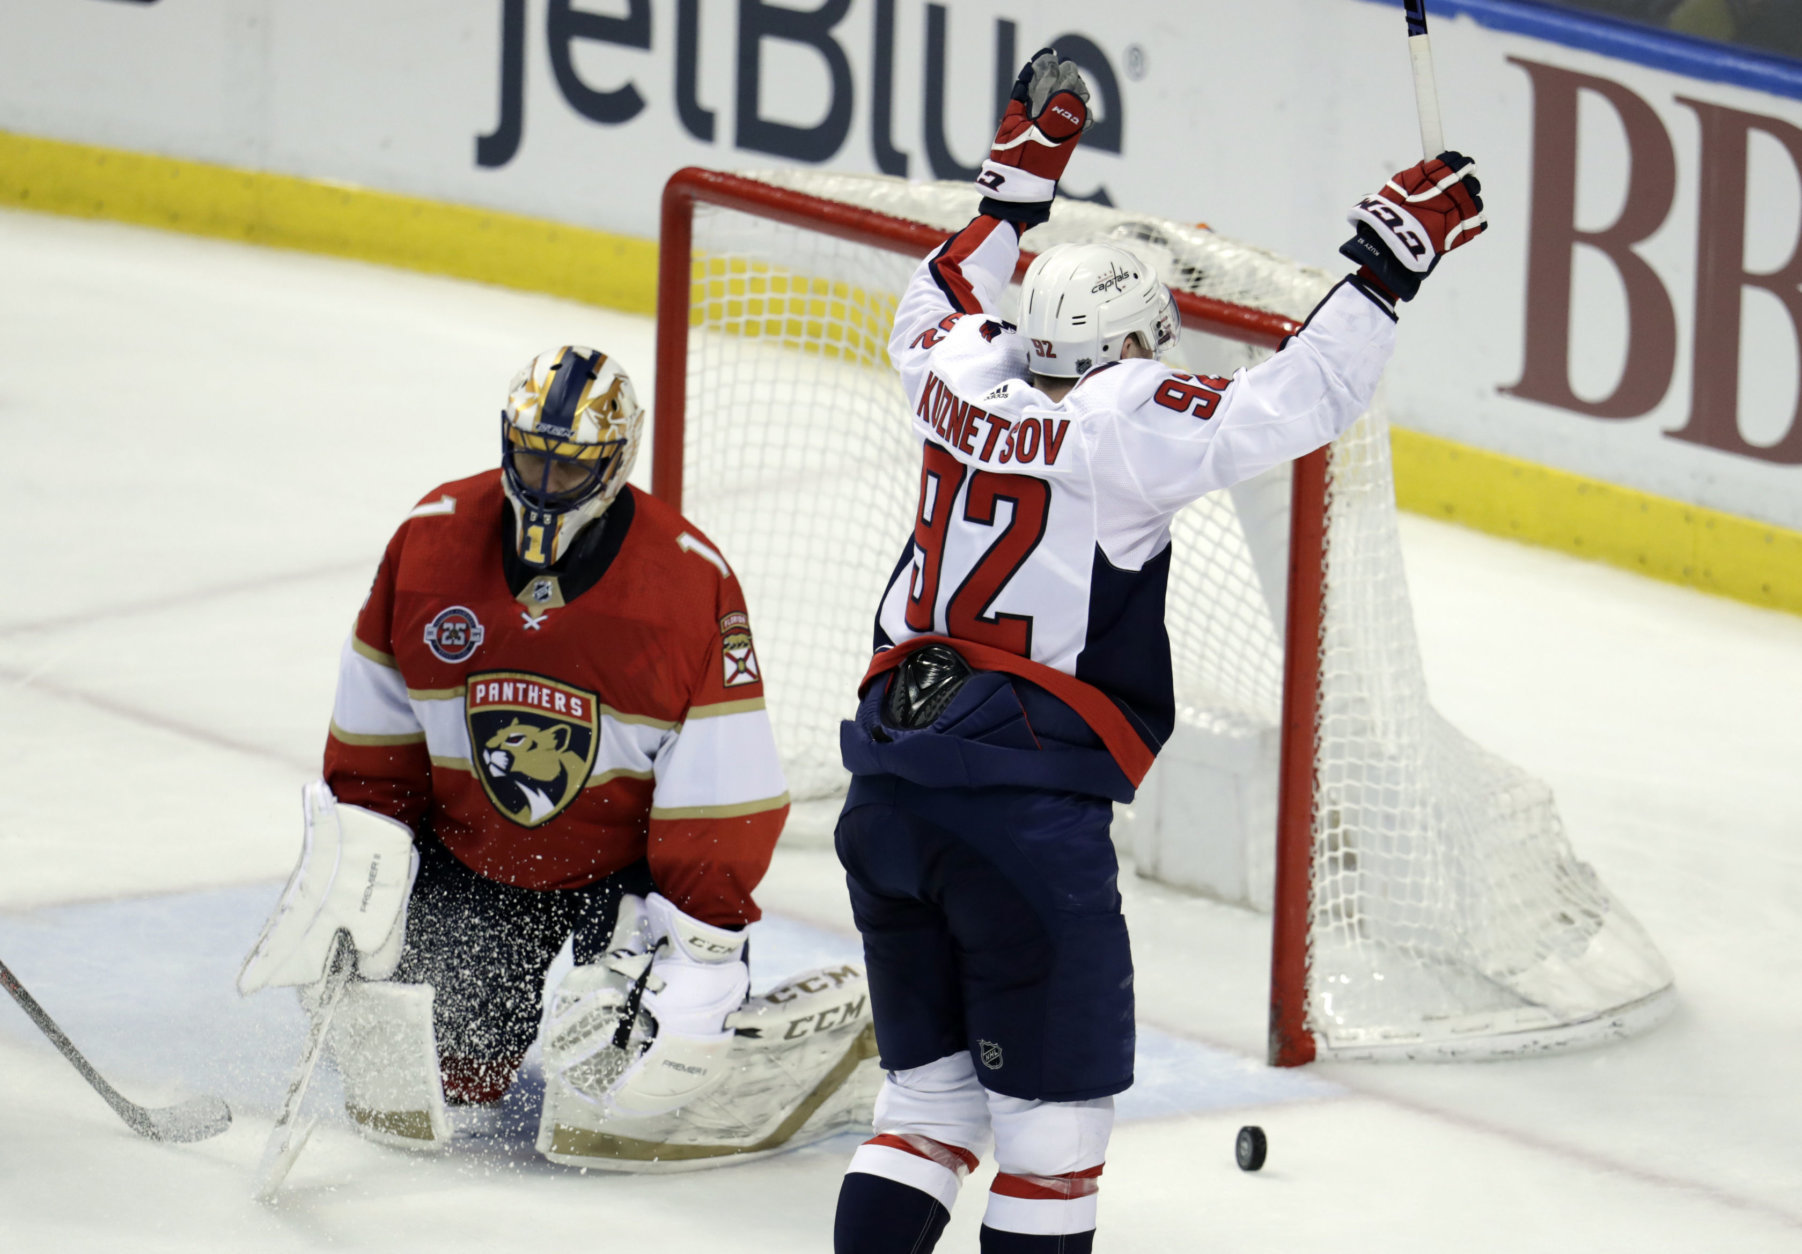 Washington Capitals center Evgeny Kuznetsov (92) celebrates after scoring a goal against Florida Panthers goaltender Roberto Luongo (1) during the third period of an NHL hockey game, Monday, April 1, 2019, in Sunrise, Fla. (AP Photo/Lynne Sladky)